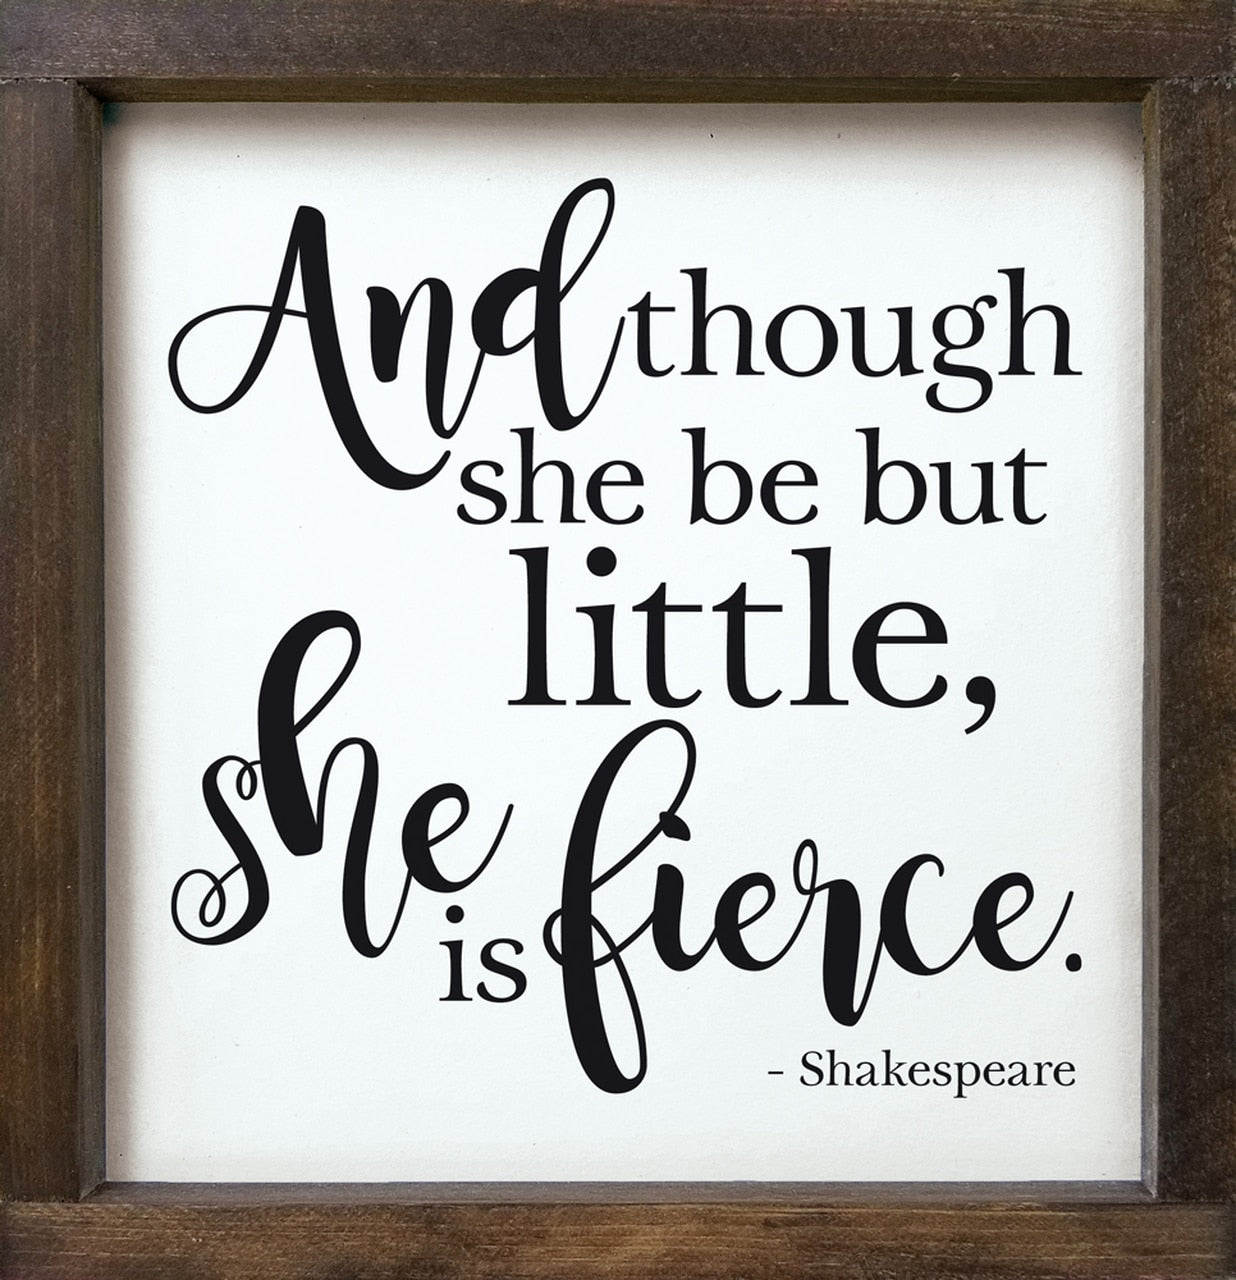 And though she but little..... framed sign